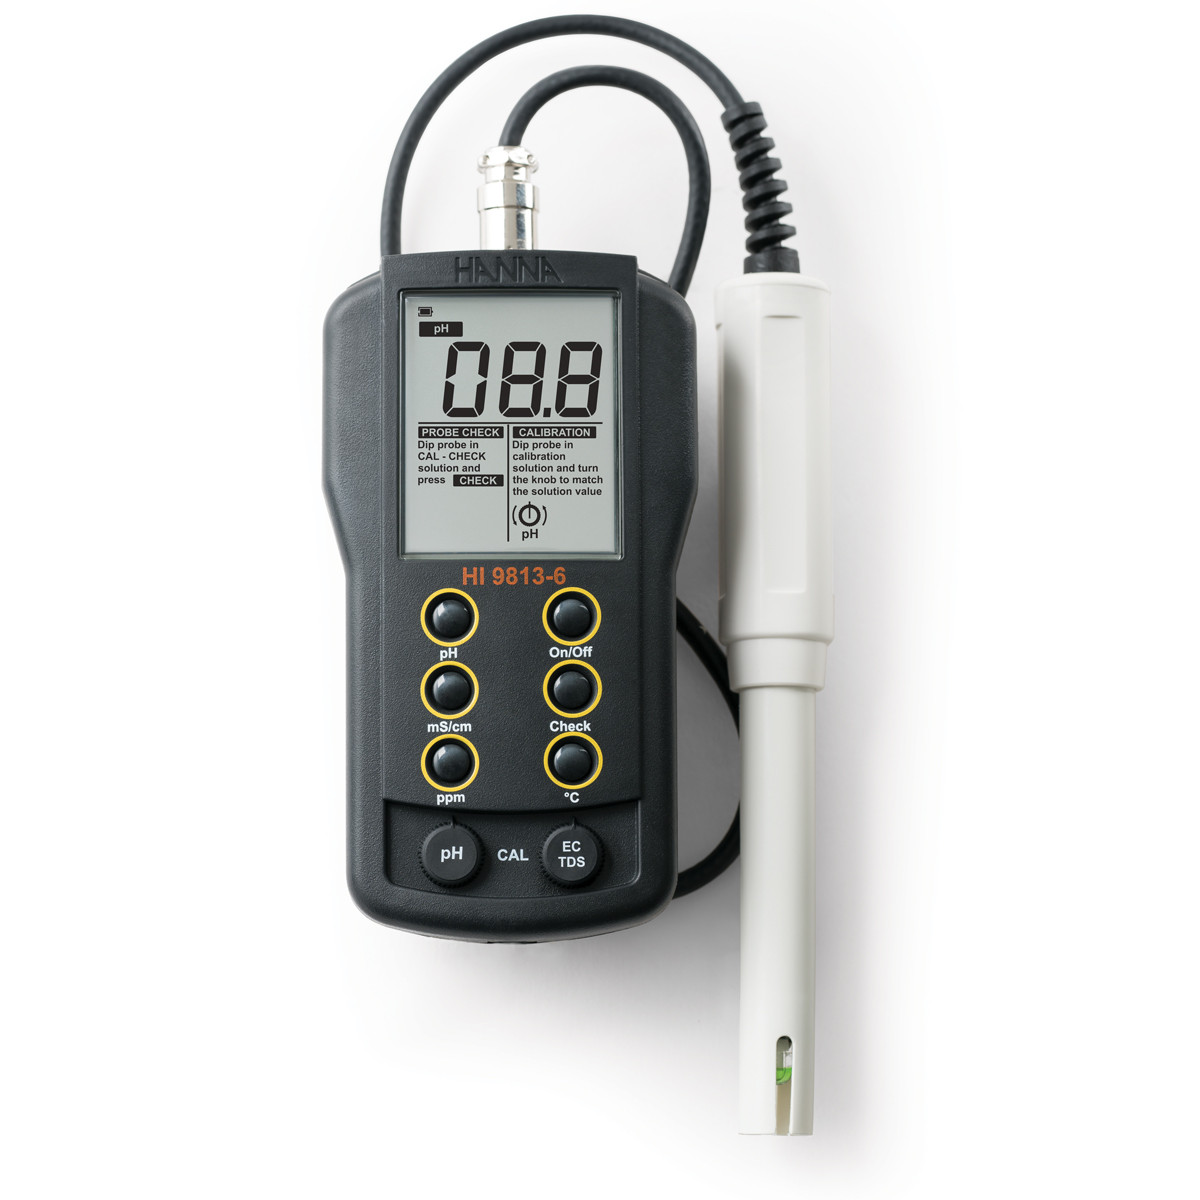 Portable pH/EC/TDS/Temperature Meter with CAL Check™